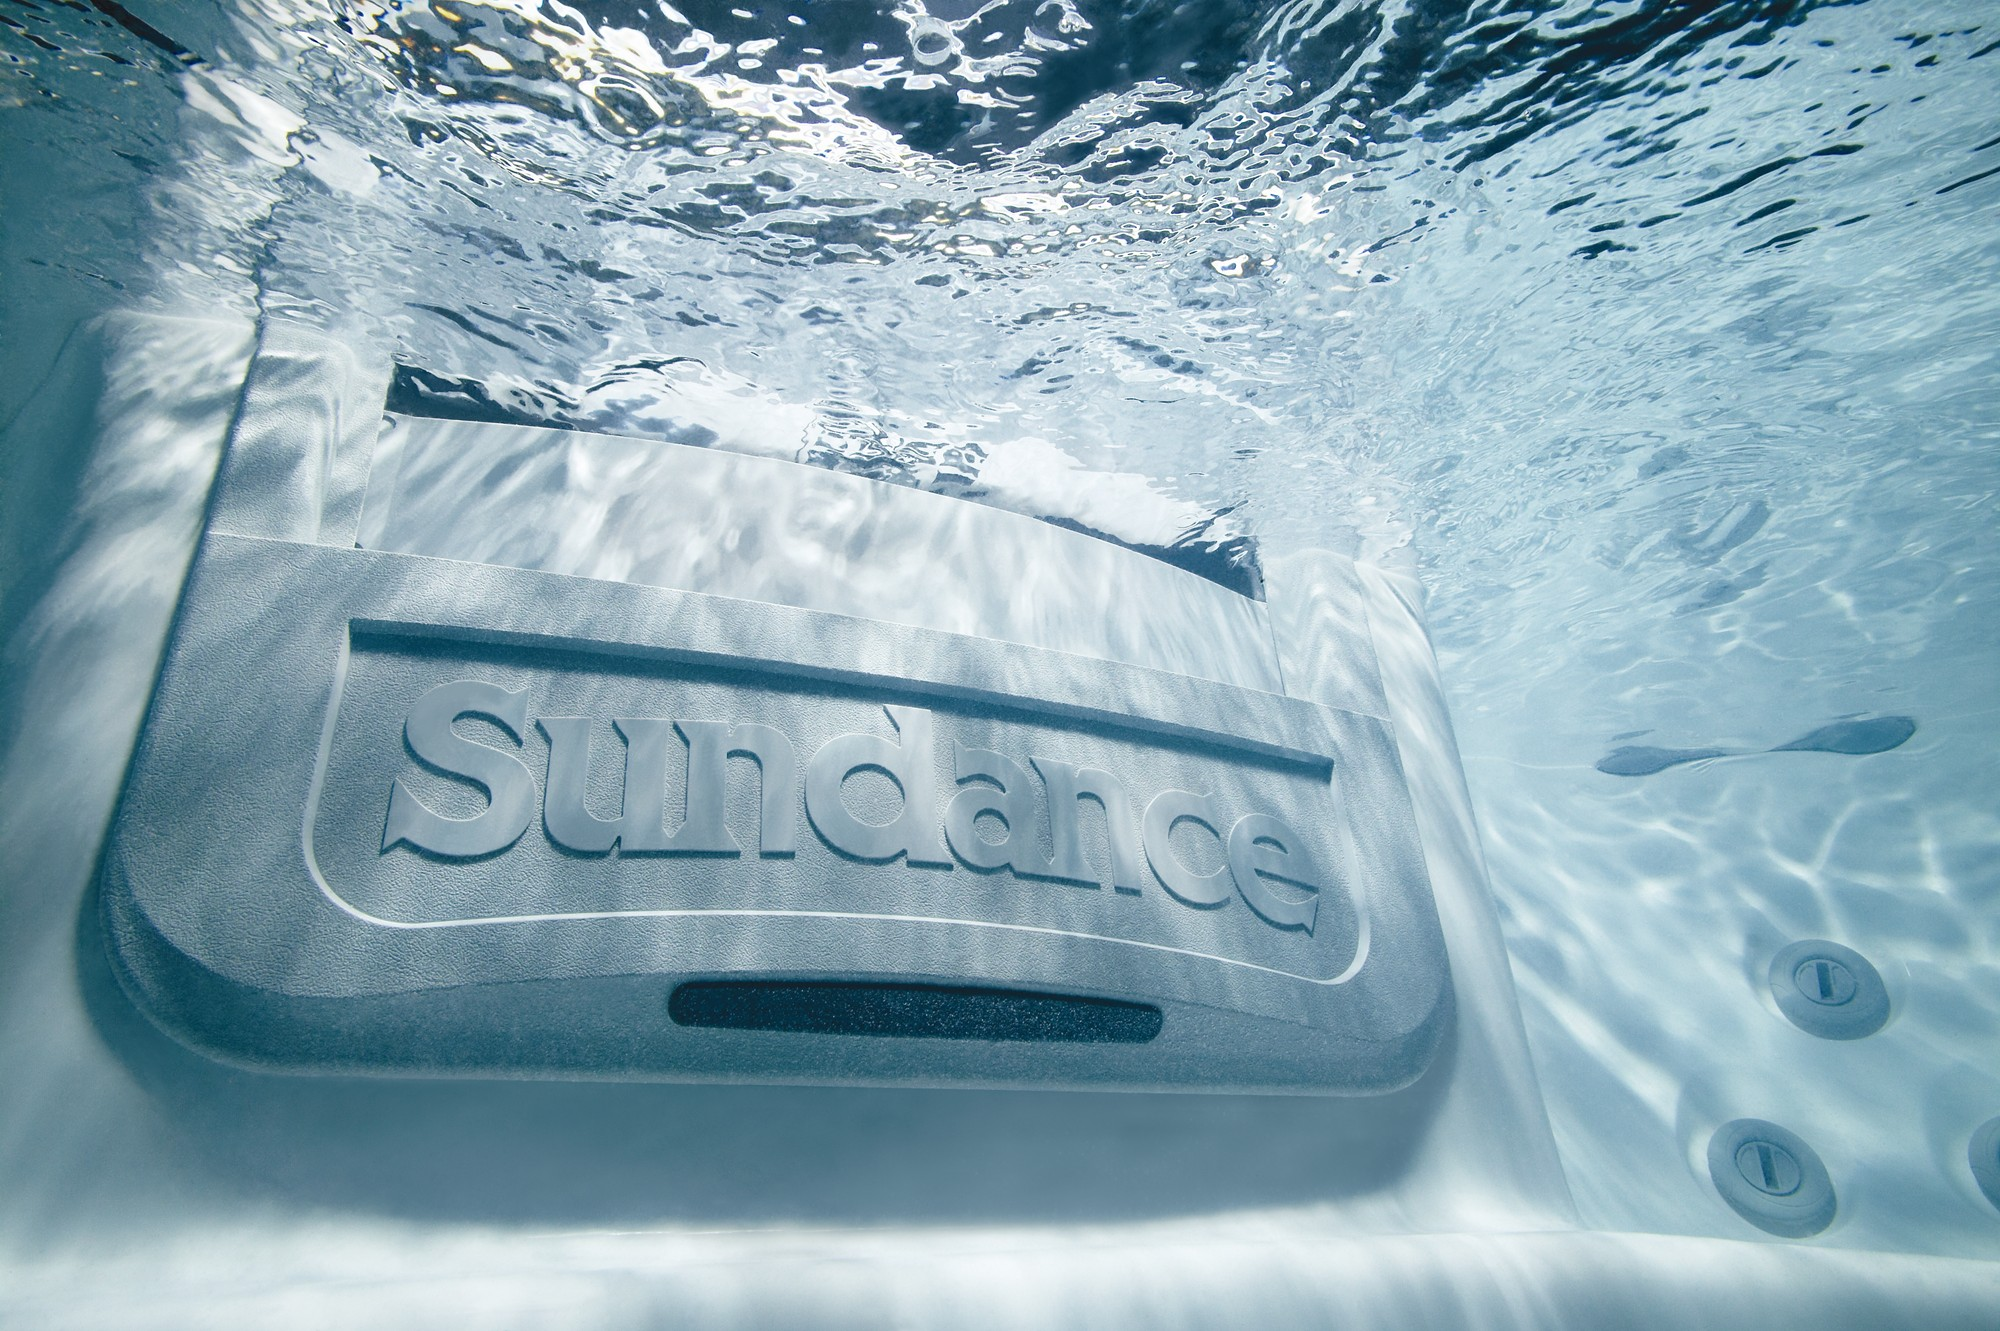 Sundance Spas and Hot Tubs in Grand Rapids MI 49512 - Emerald Spa and Billiards